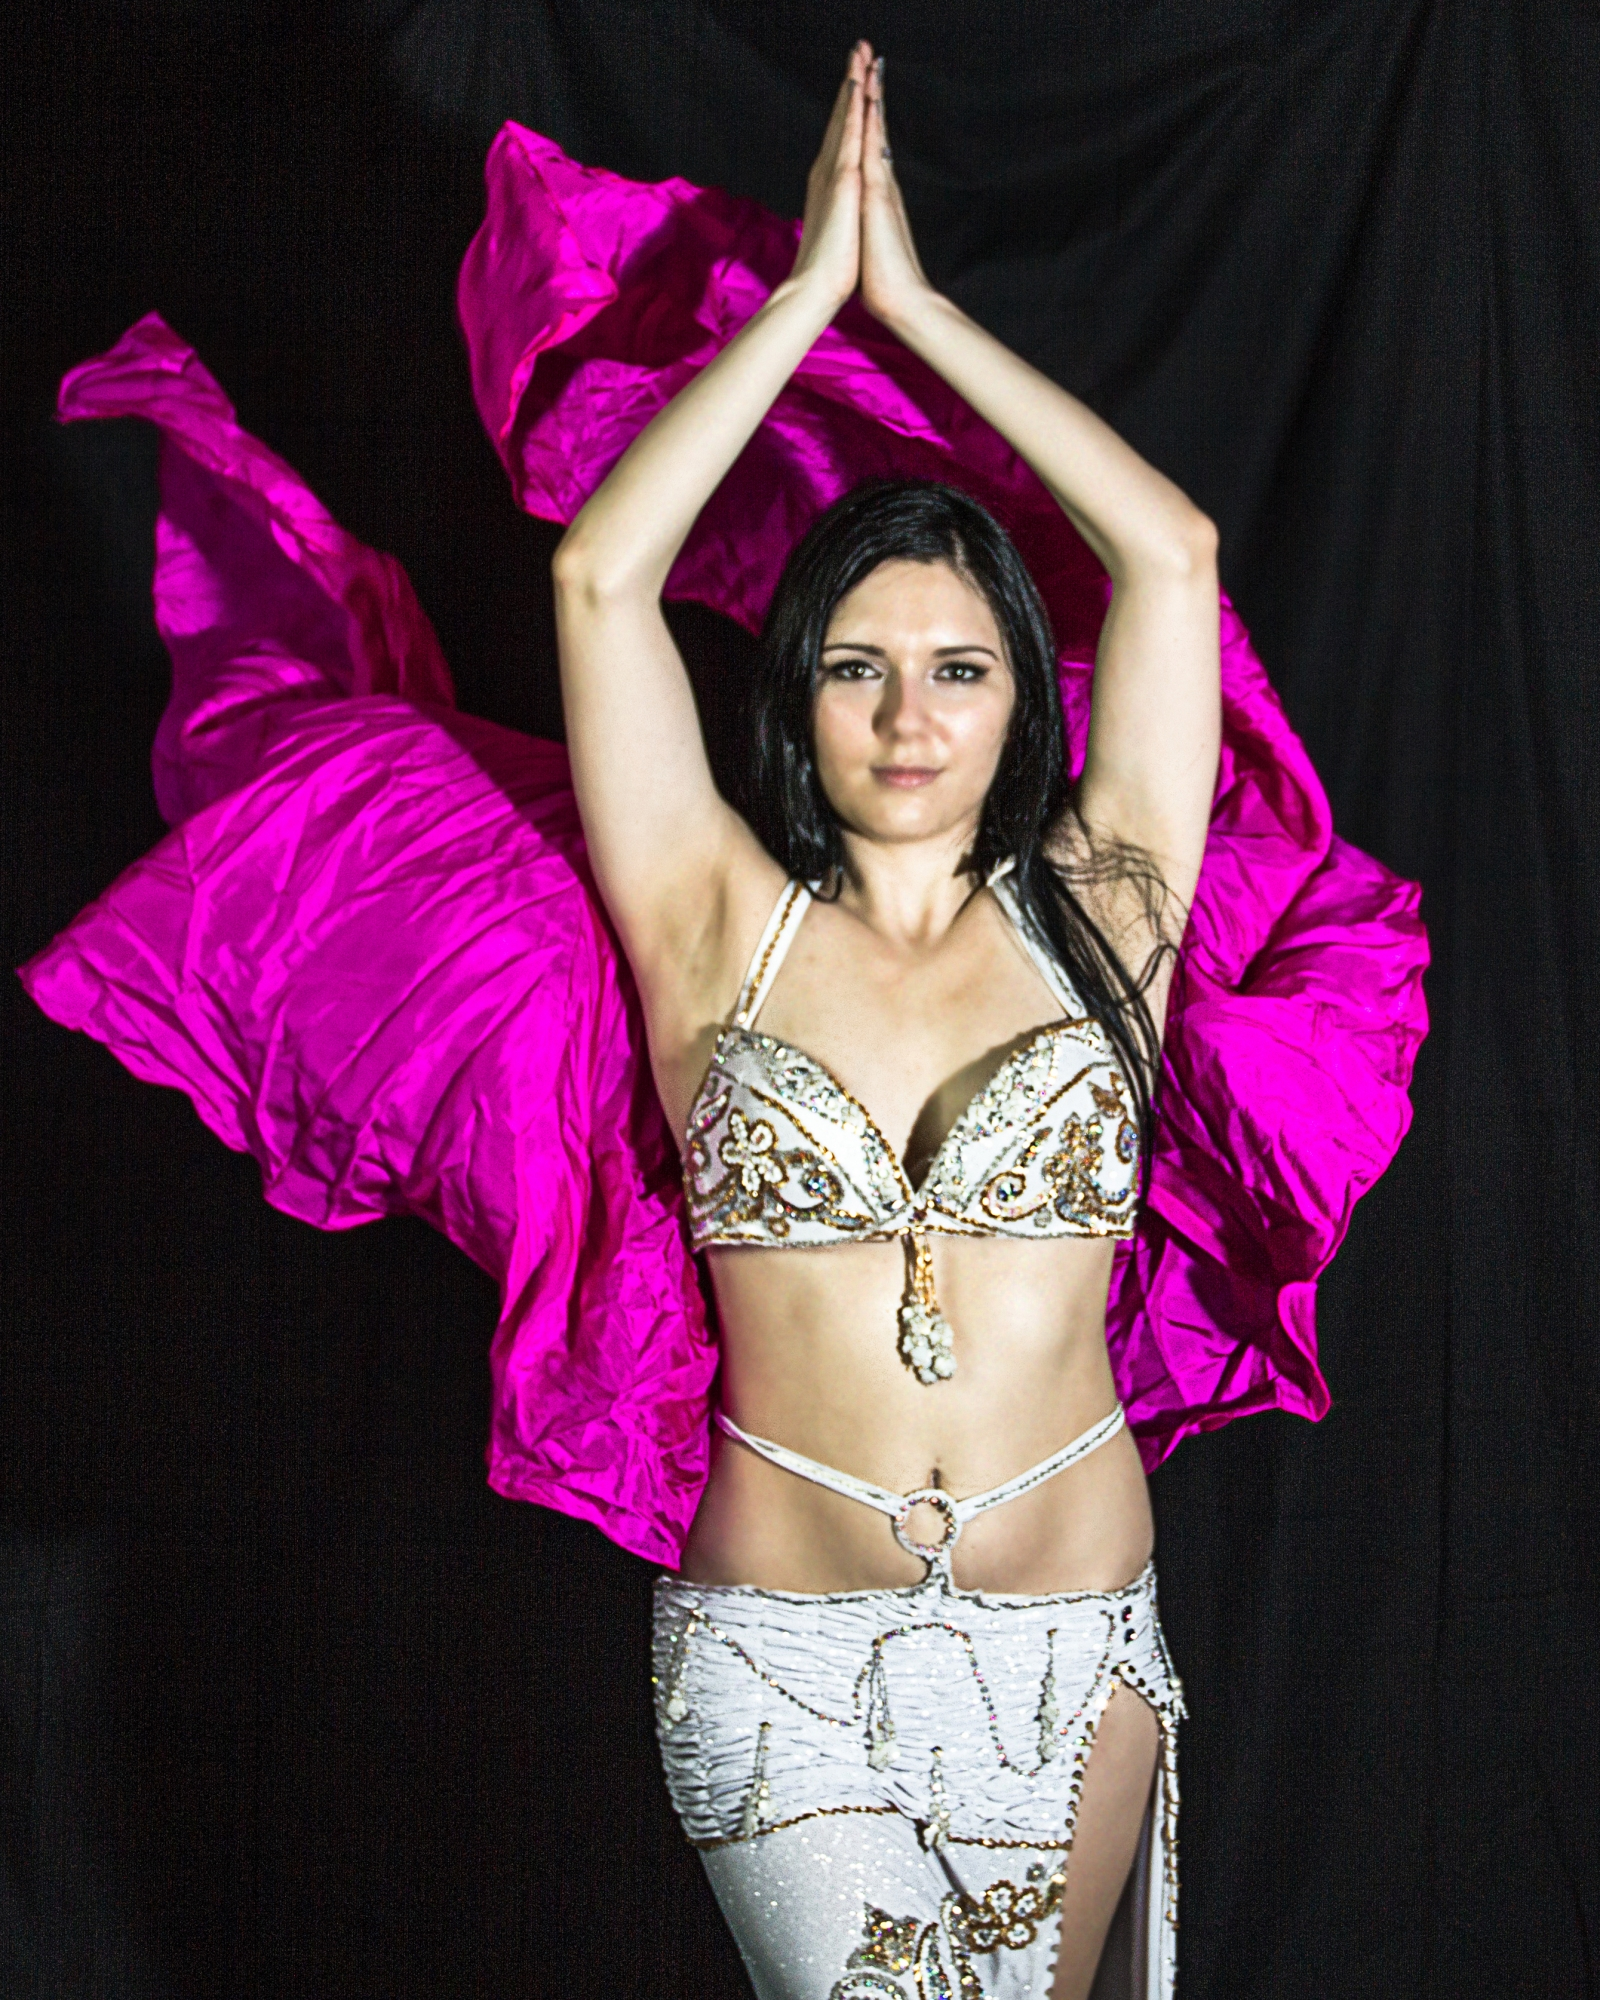 an argument against female inferiority in diane wakoskis belly dancer The anterior is both that against which the book revolts burlesque and belly dancers, and an art show full of jewelry diane wakoski.